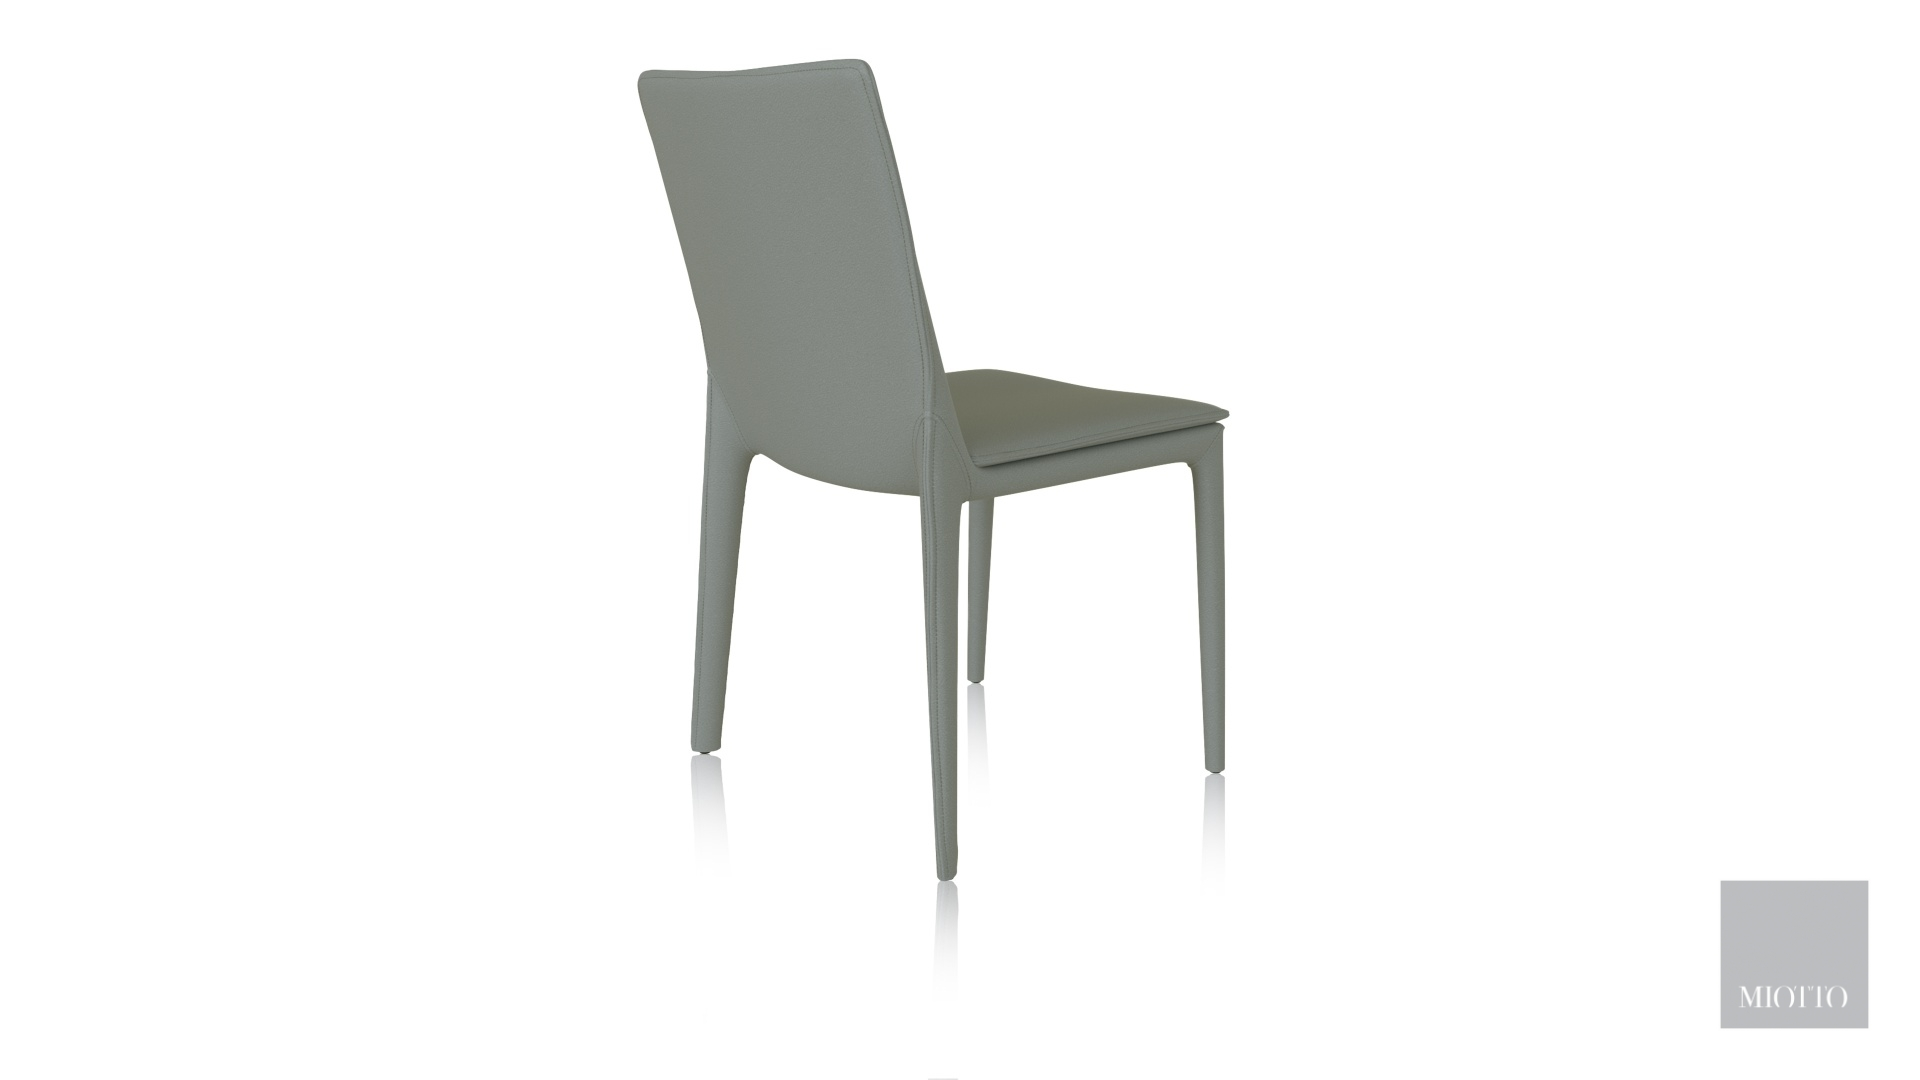 miotto_torano DC back light grey T miotto dining chair furniture